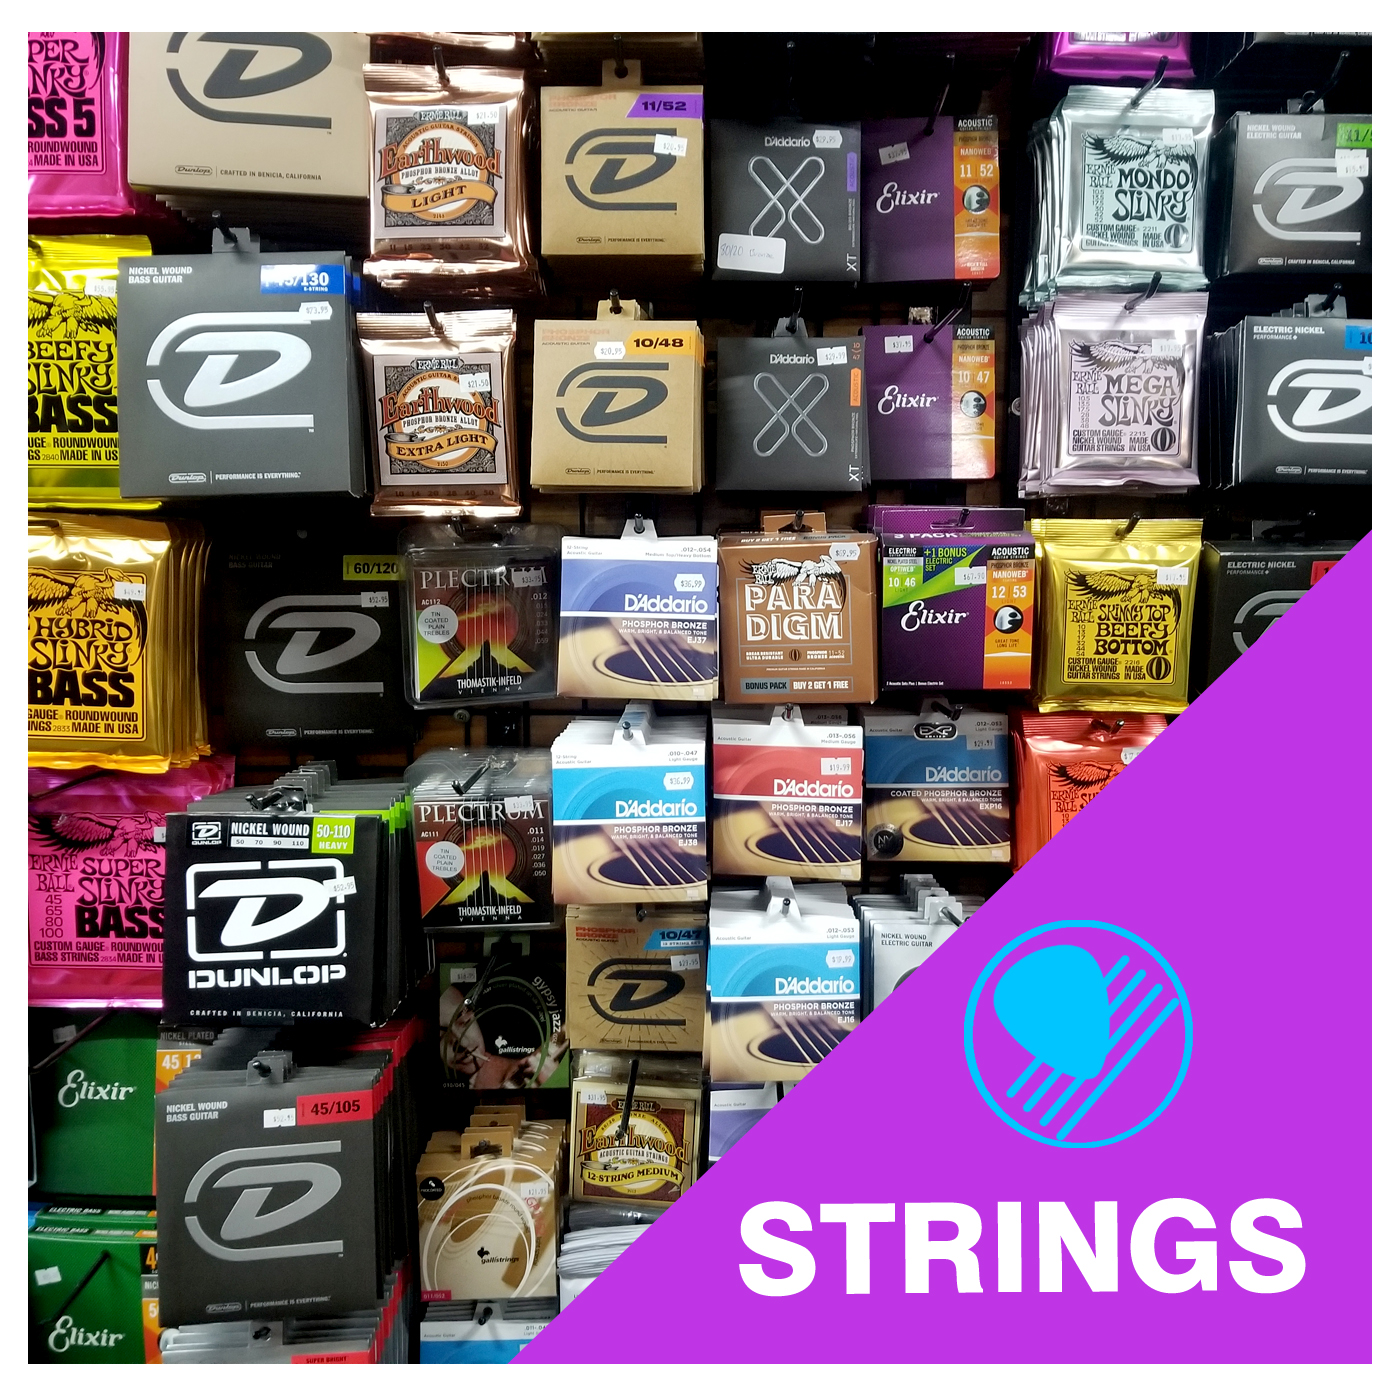 strings-copy.jpg